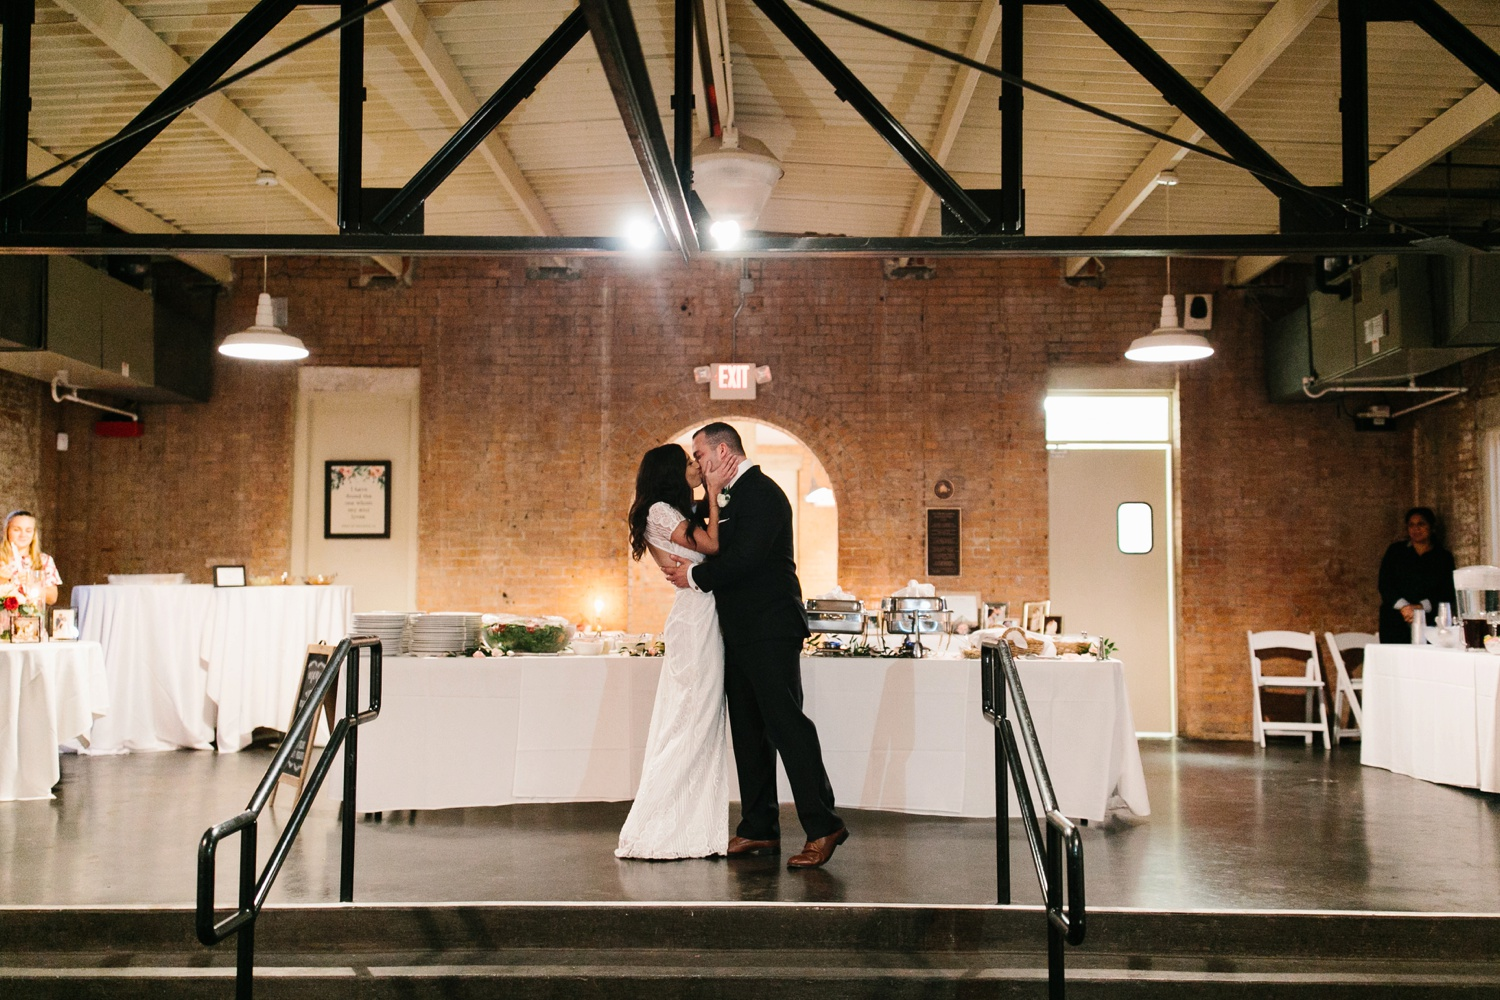 Kadee + Tyler | a raw, emotional wedding at the Filter Building on White Rock Lake in Dallas, TX by North Texas Wedding Photographer, Rachel Meagan Photography 193